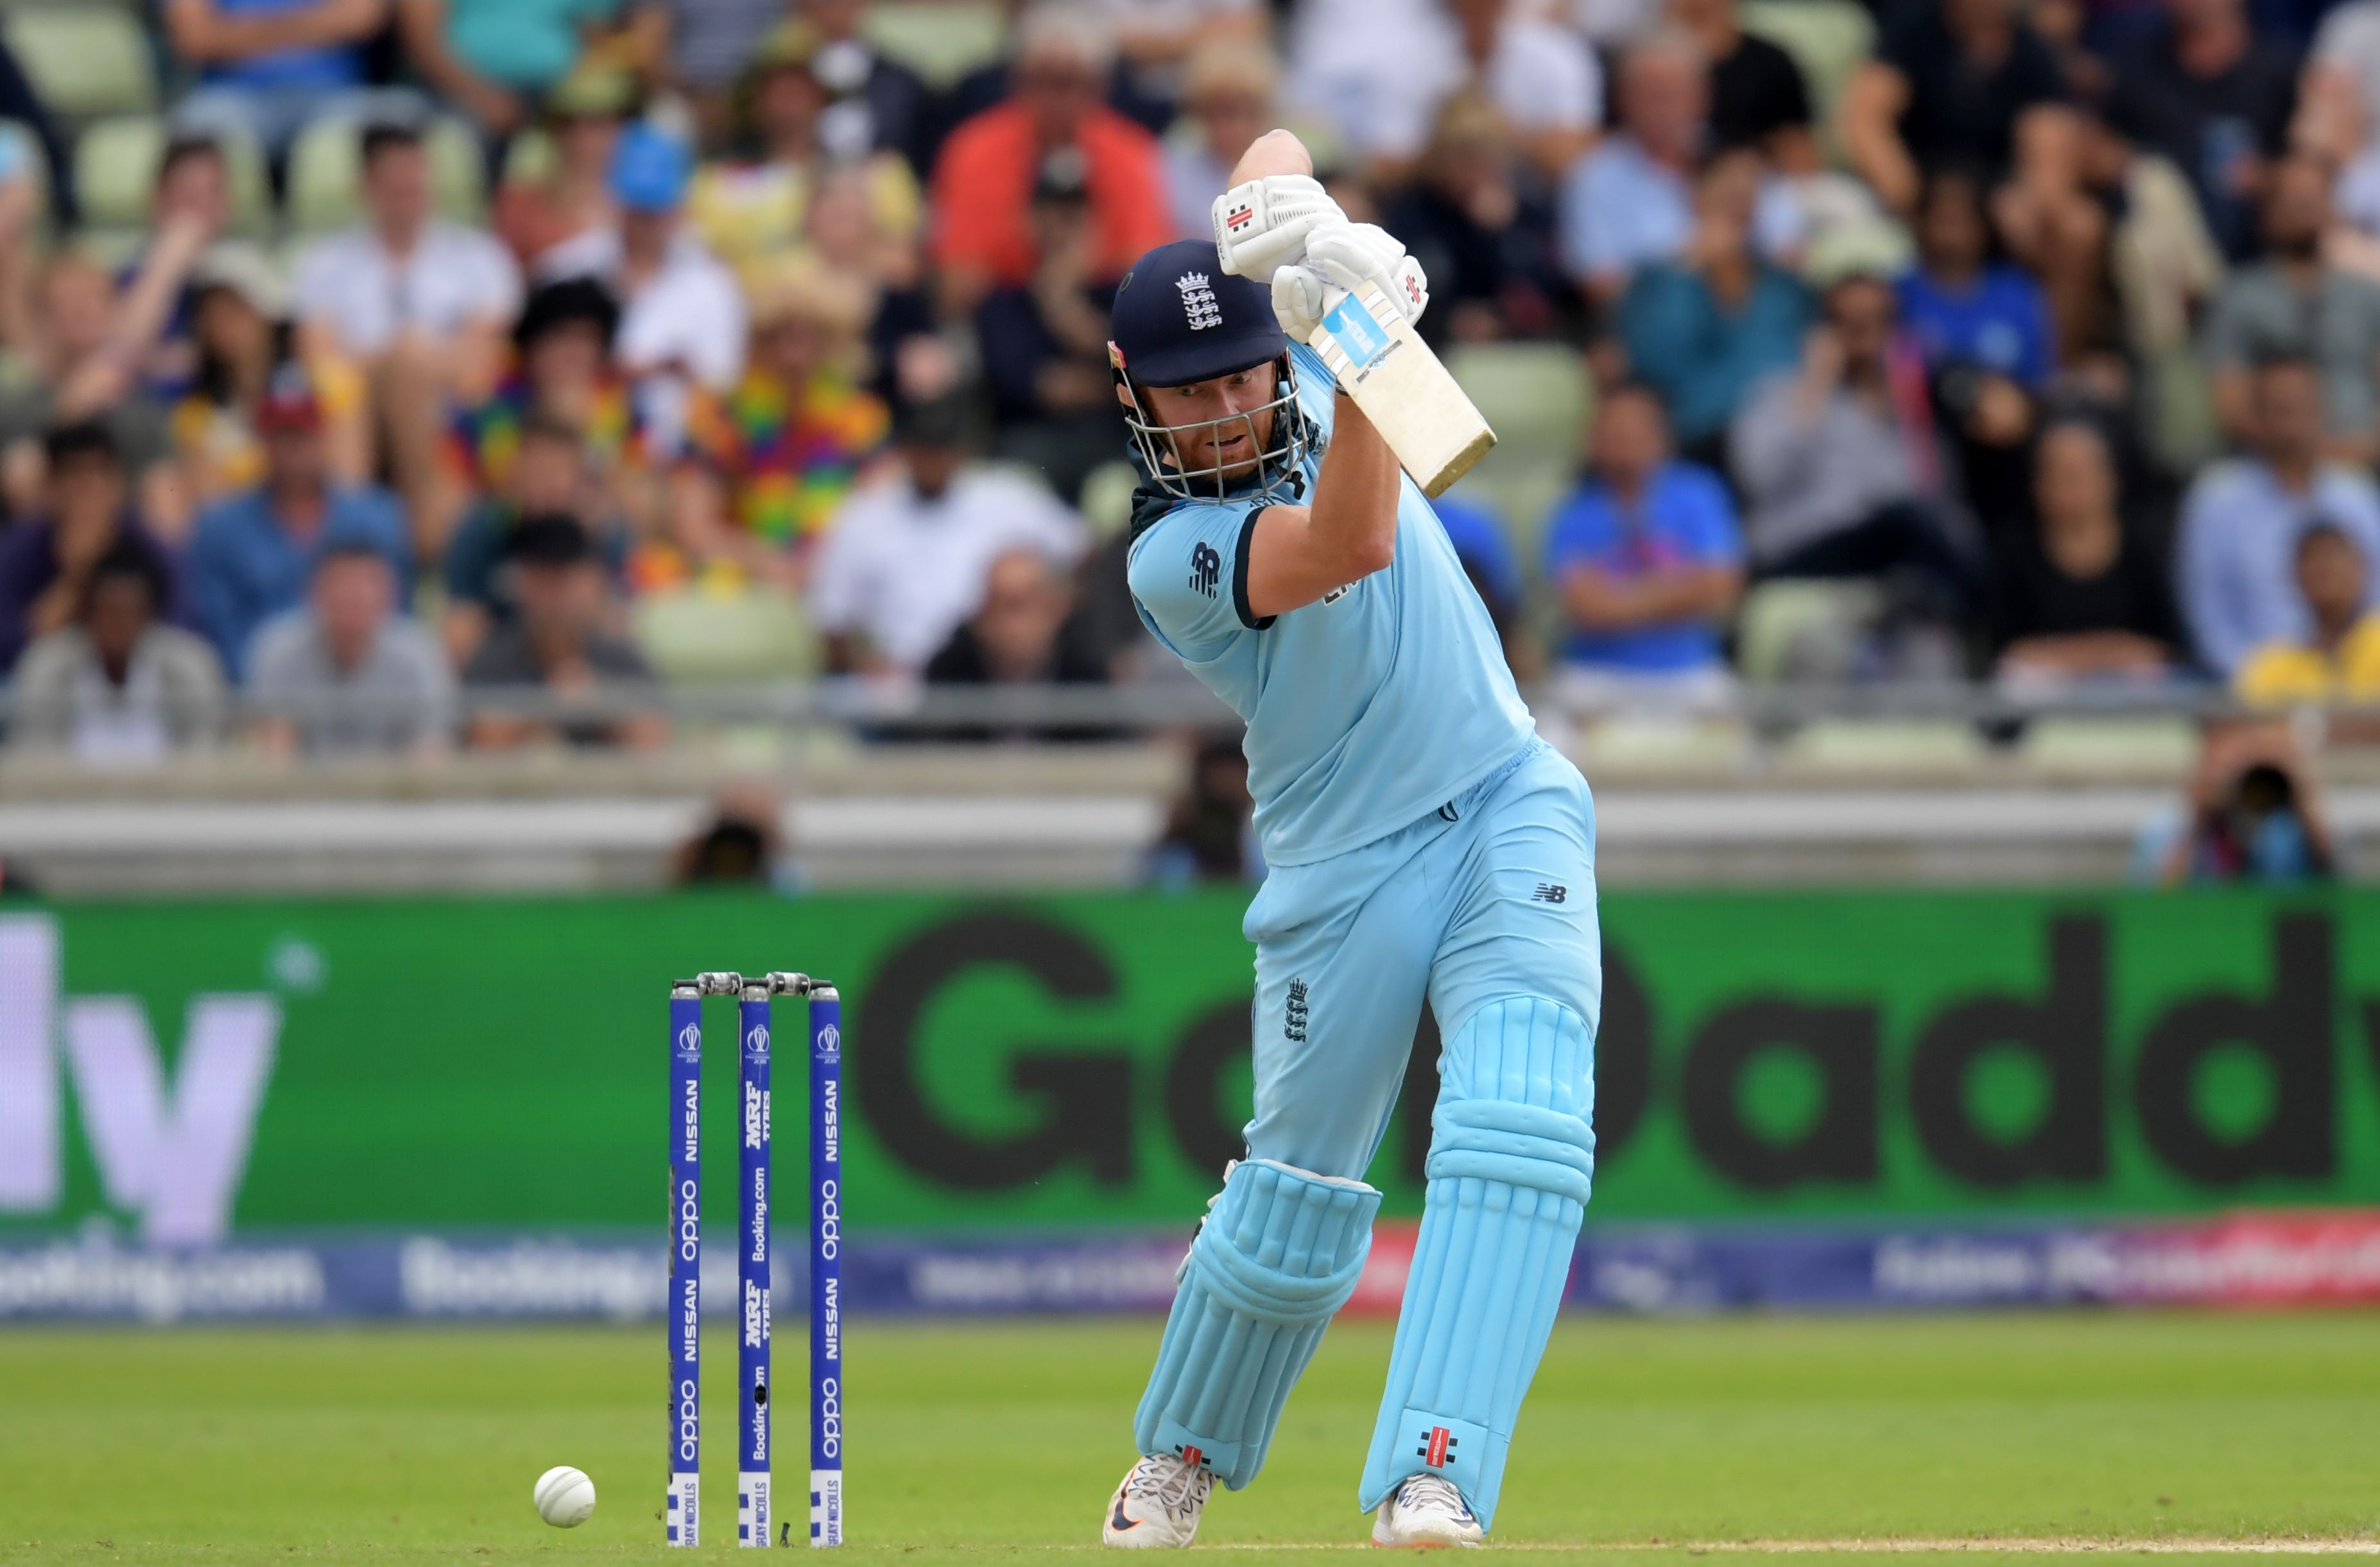 Jason Roy plays a shot during the 2019 Cricket World Cup. Photo: AFP